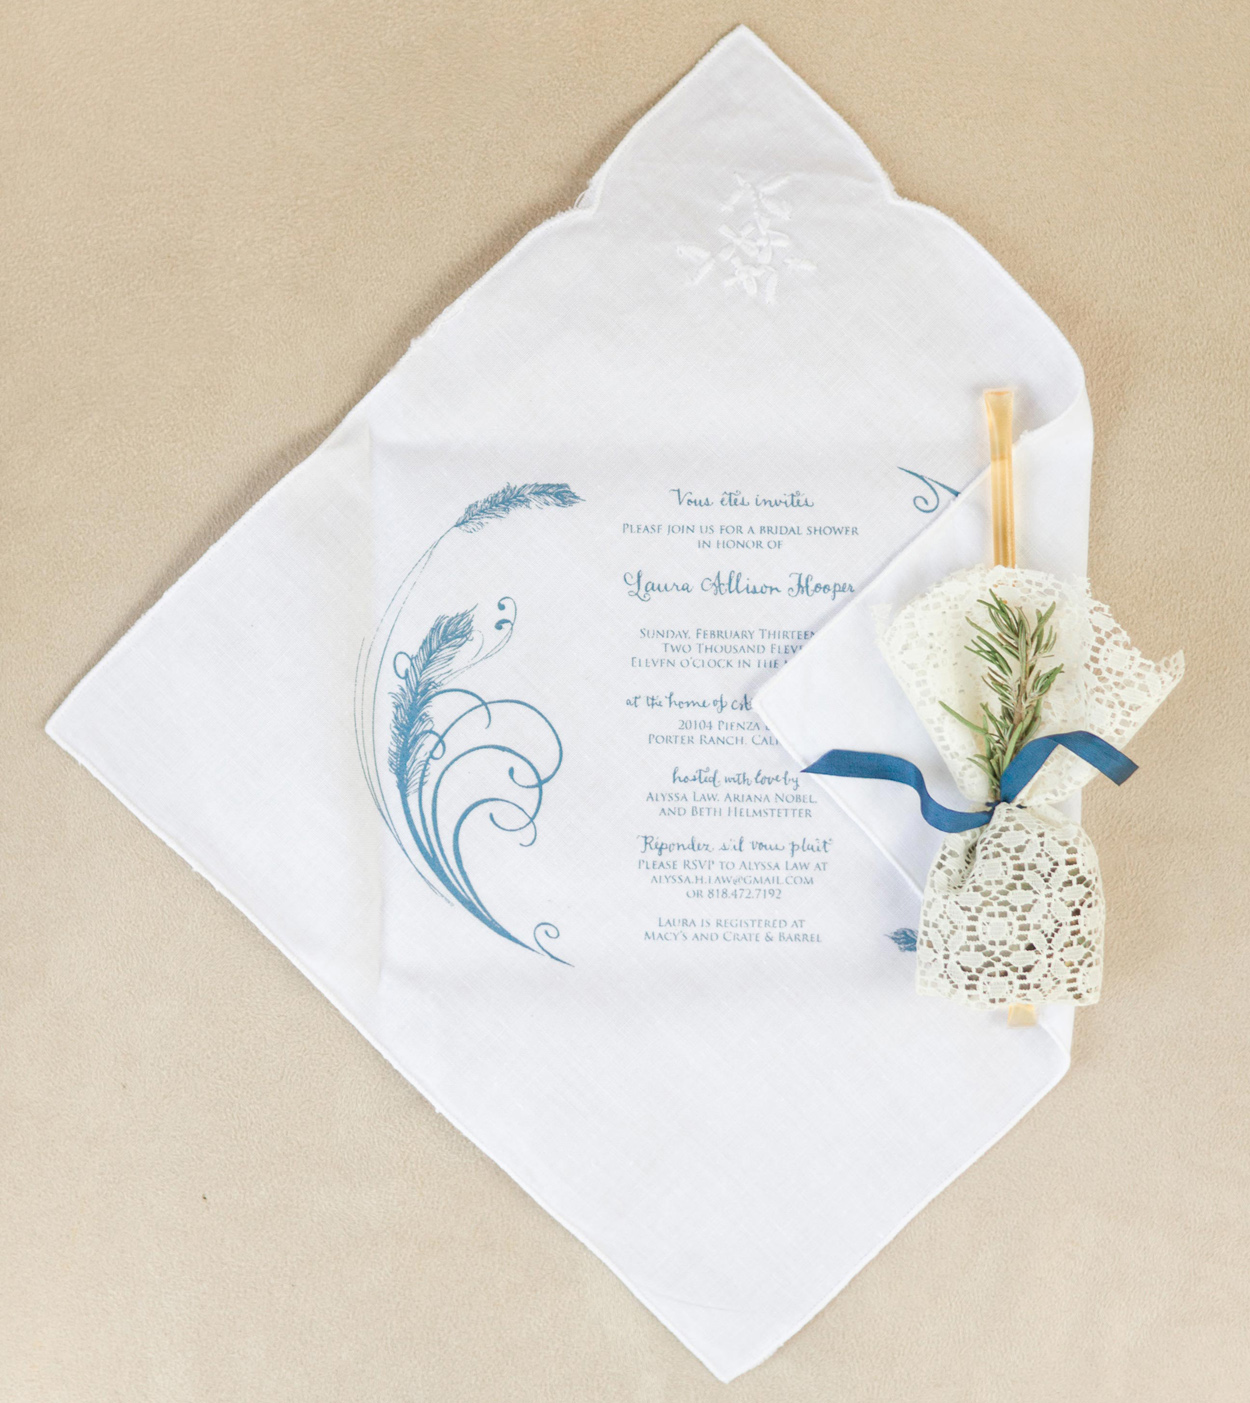 Etiquette for bridal shower invitations inside weddings what information to include on bridal shower invitations filmwisefo